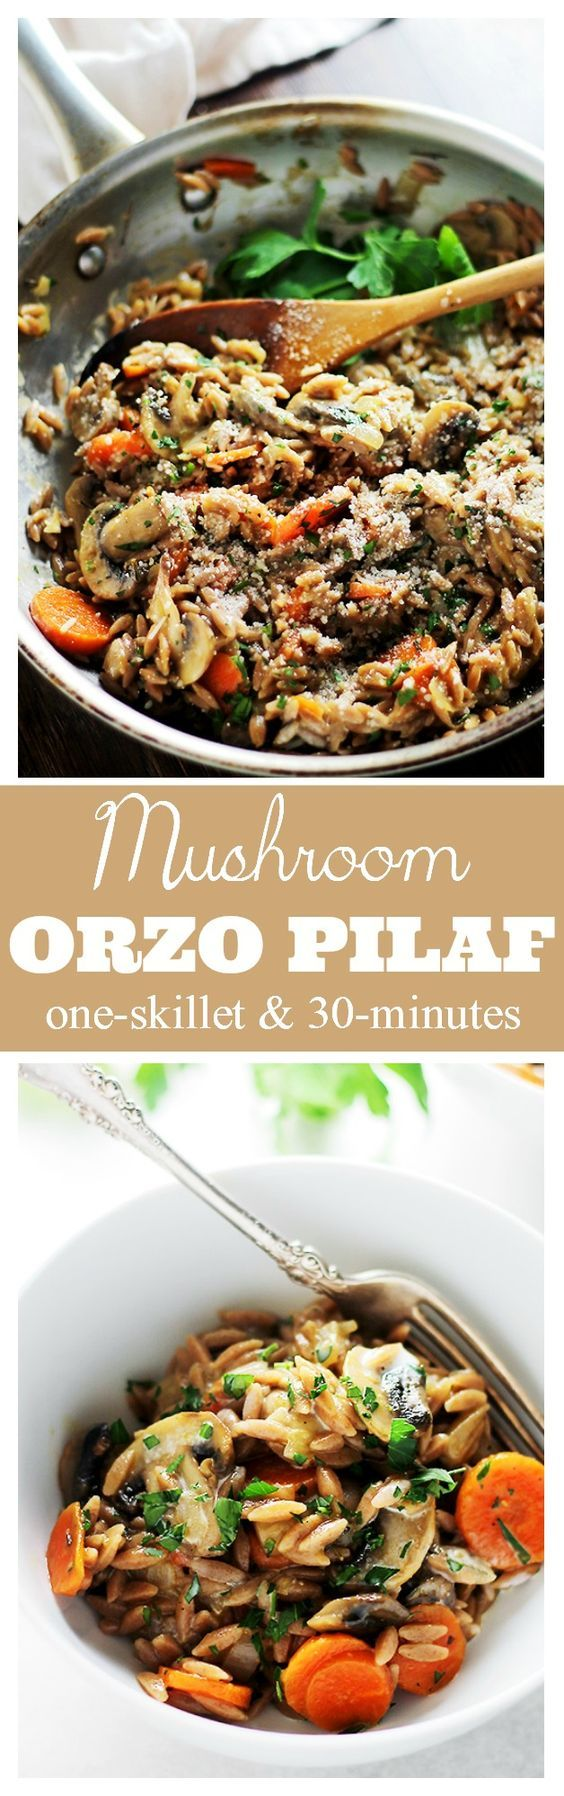 Mushroom Orzo Pilaf - Quick, creamy and delicious one-pot pilaf with orzo and mushrooms.